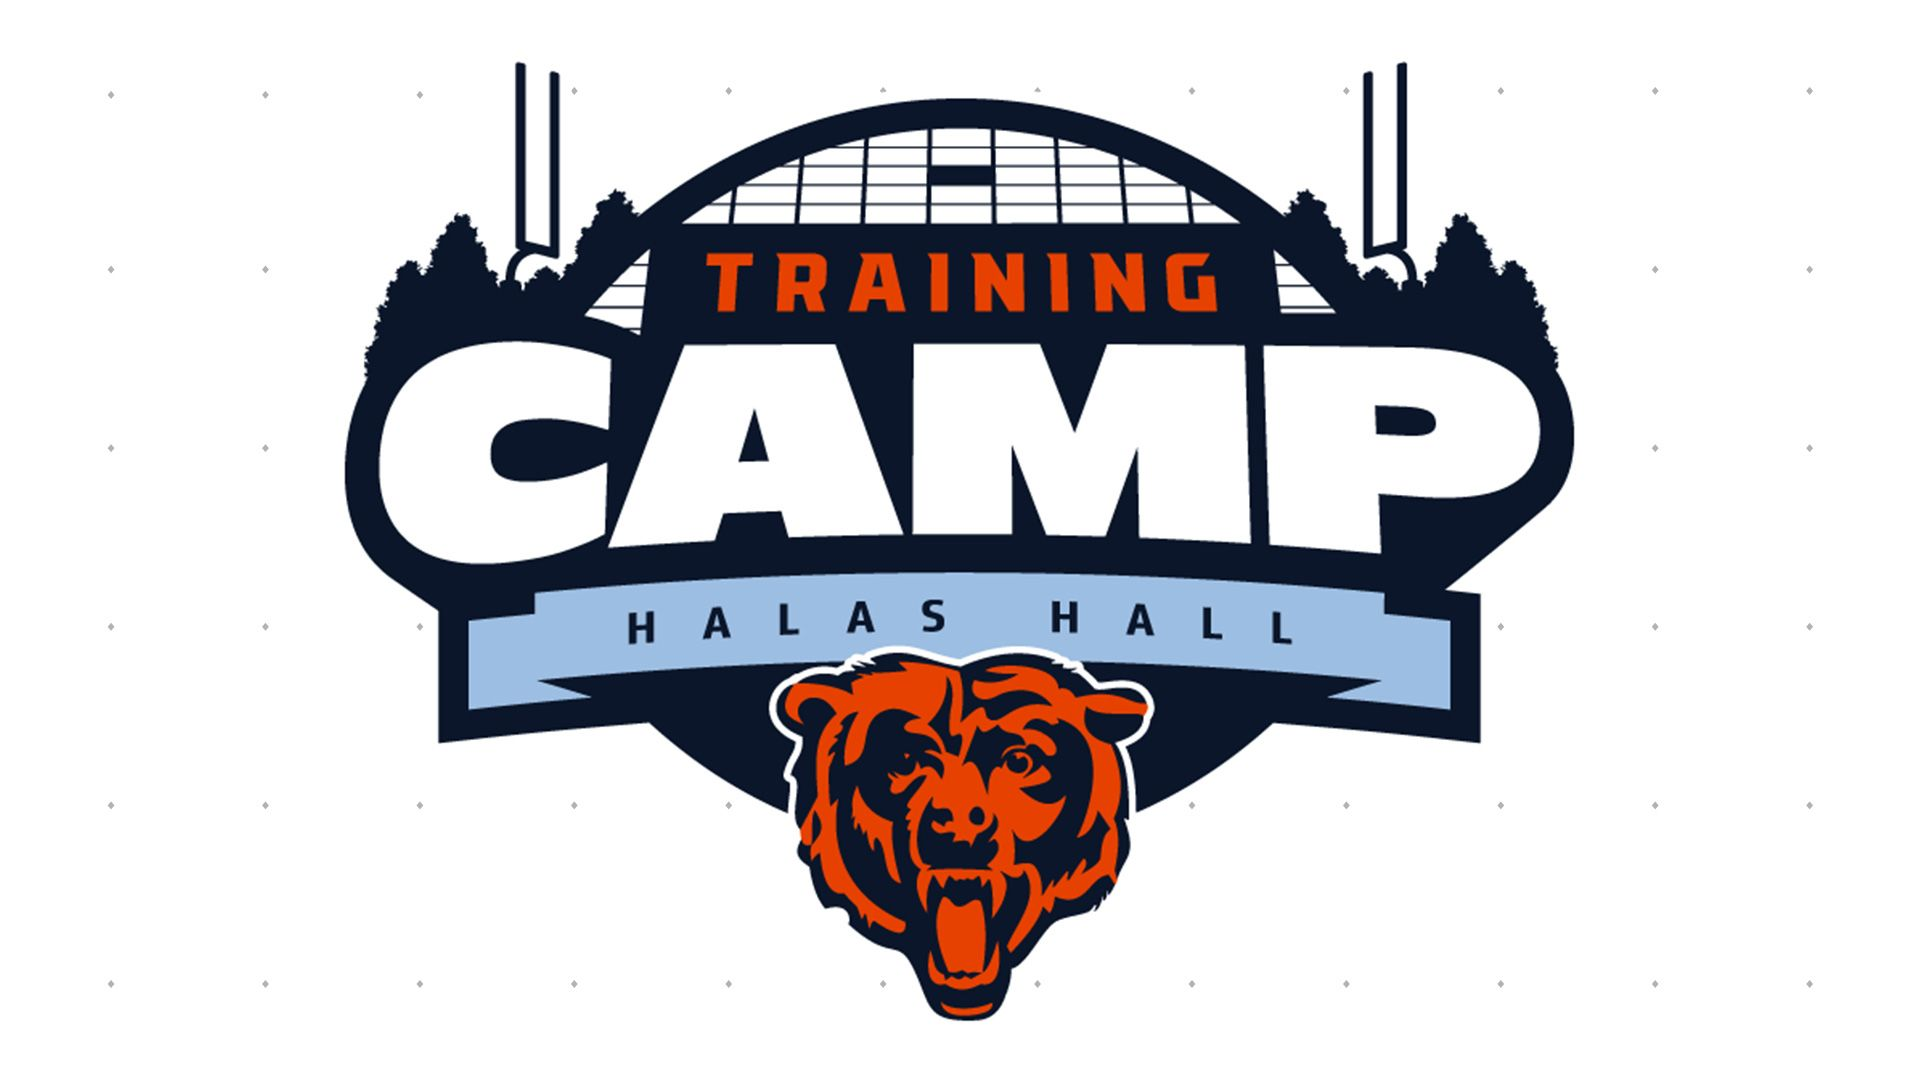 Chicago Bears Training Camp